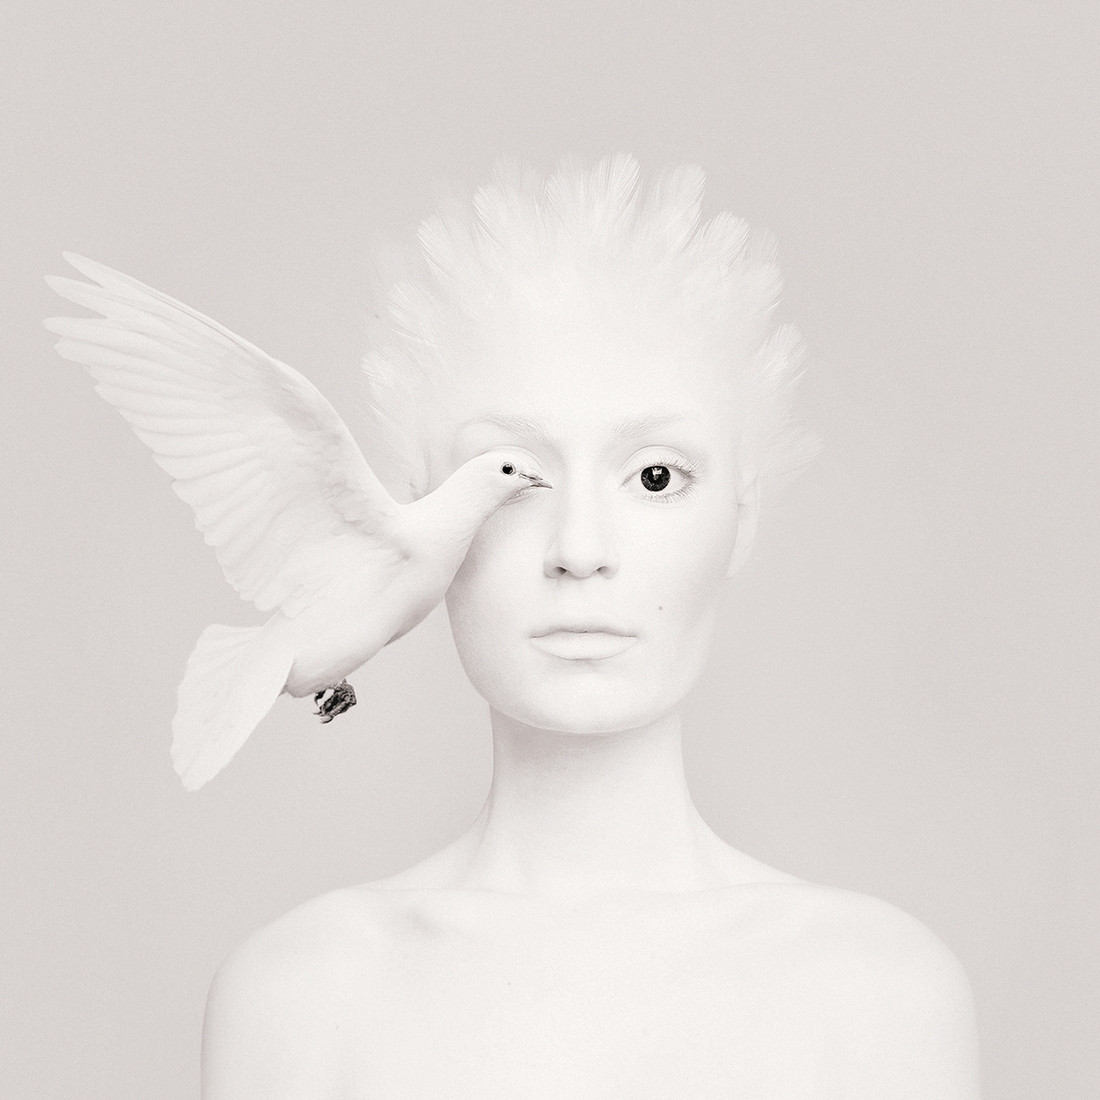 03-White-Dove-Flora-Borsi-Animeyed-Self-Portraits-Surreal-Photographs-www-designstack-co